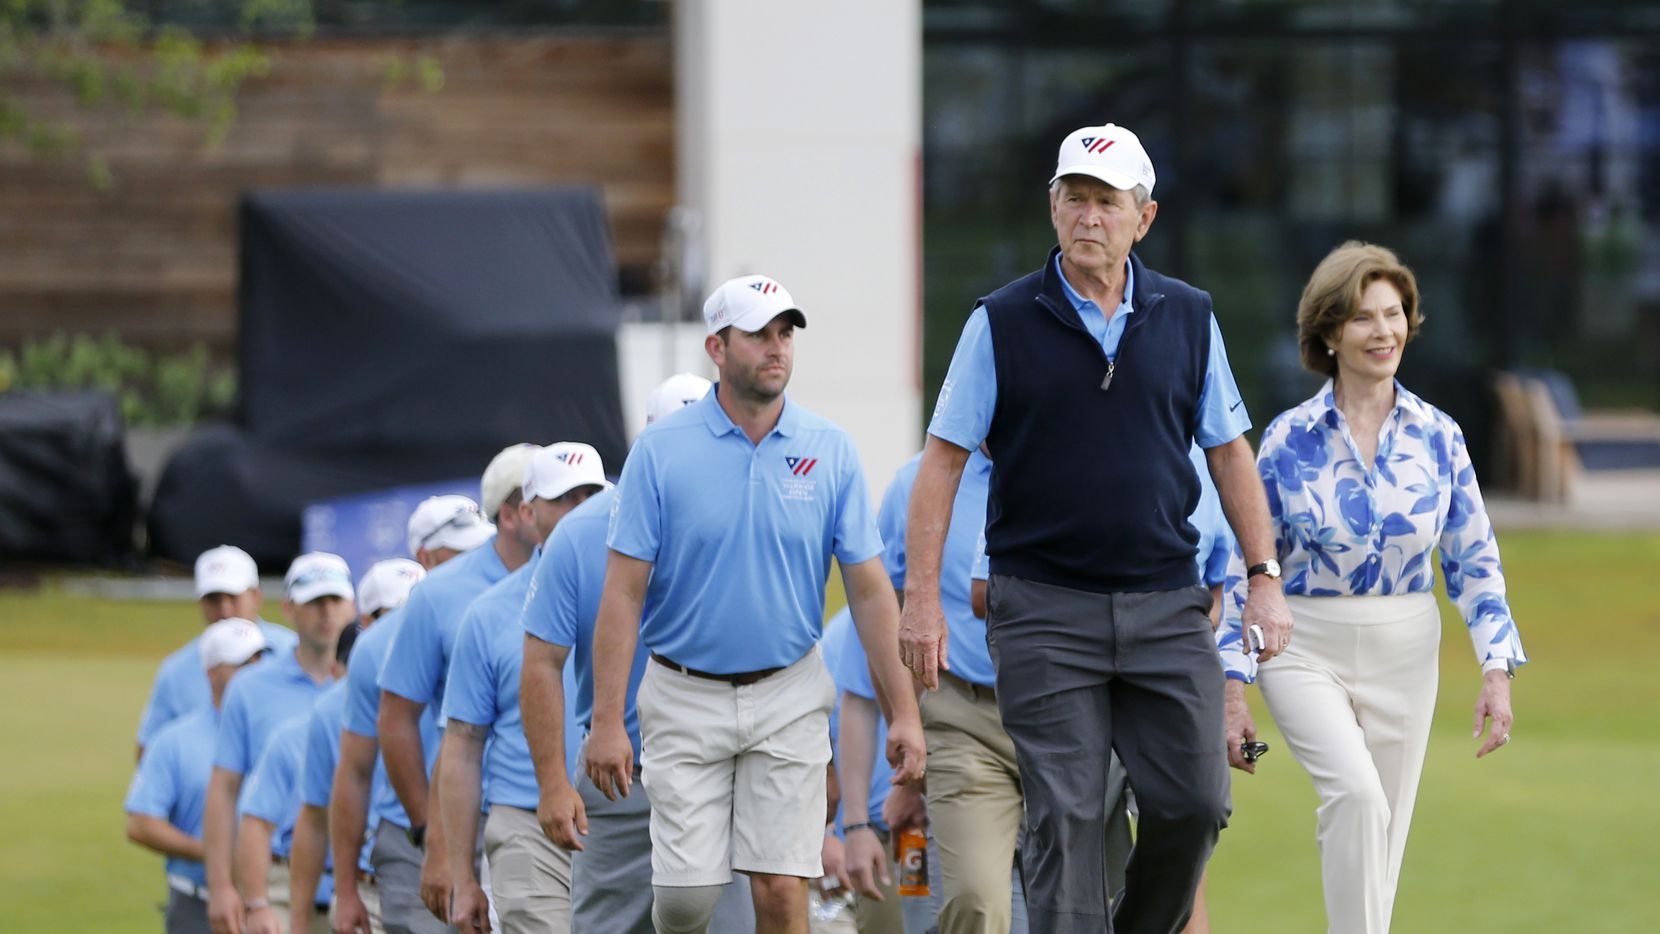 George W. Bush, 43rd President of the United States, walks towards the 18th green with former first lady Laura Bush and veterans before the start of the ceremony during the Warrior Open at the Trinity Forest Golf Club in Dallas.